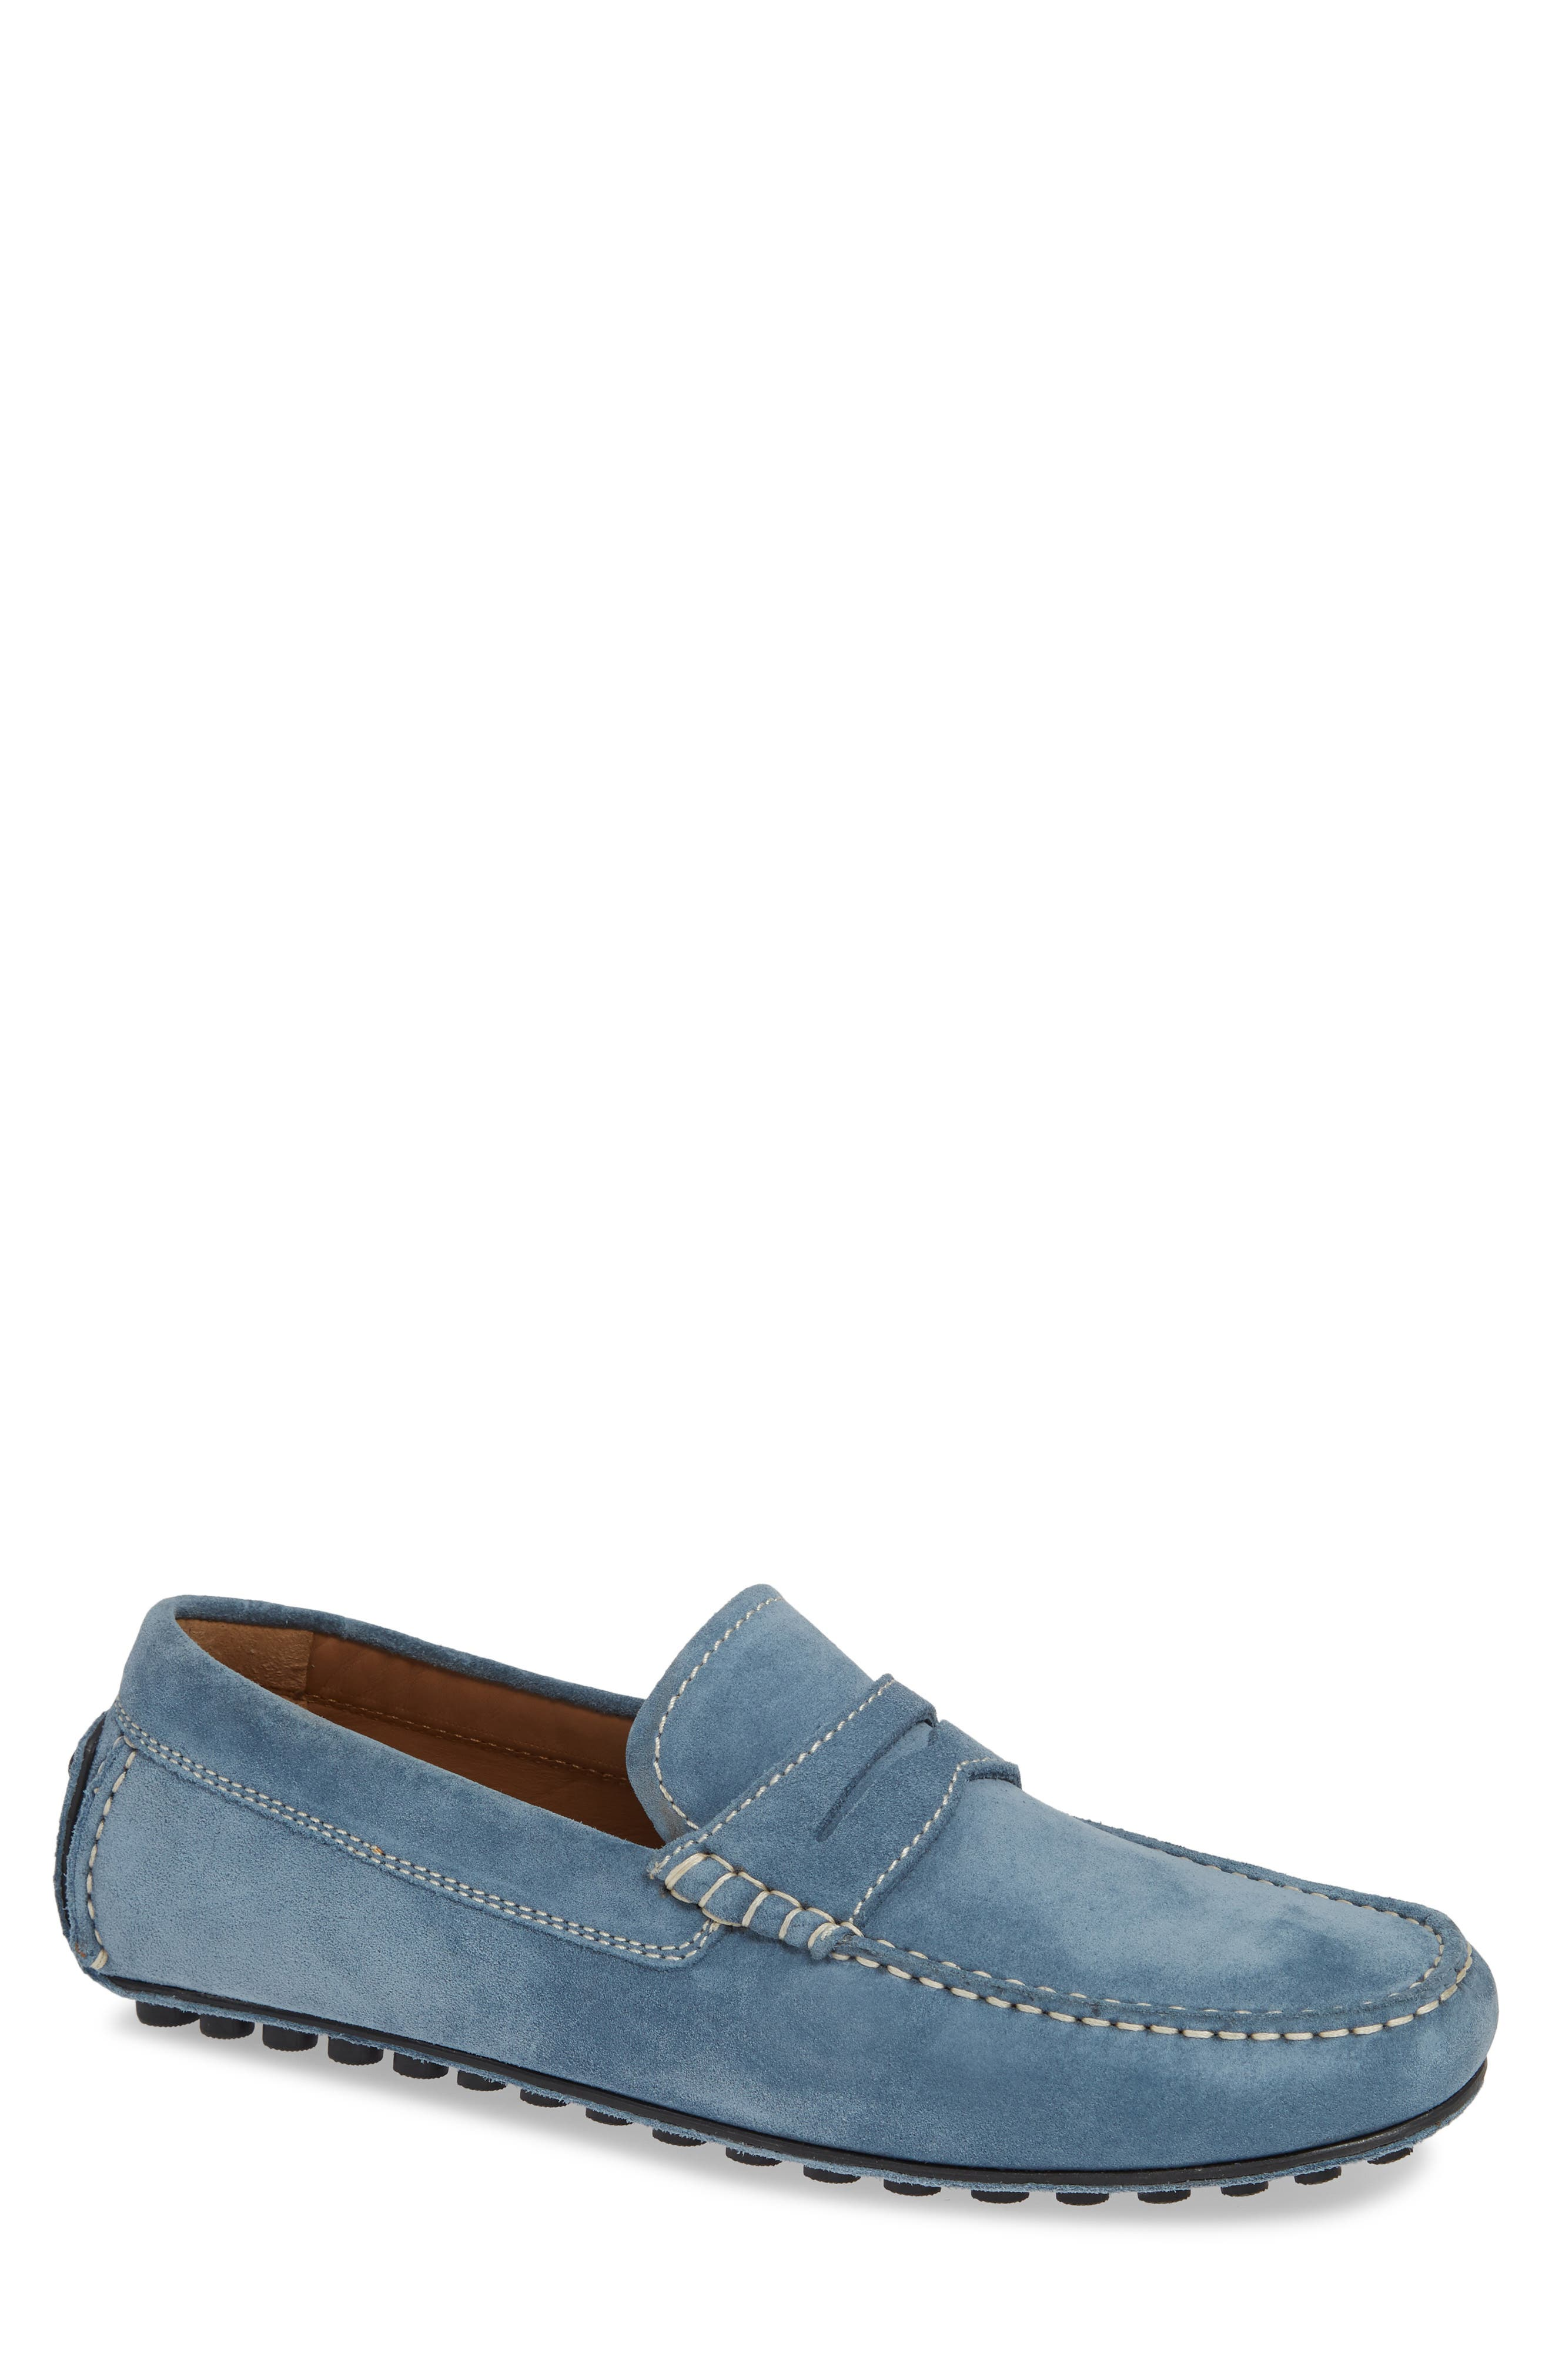 ROBERT TALBOTT Le Mans Penny Driving Loafer in Light Blue Suede